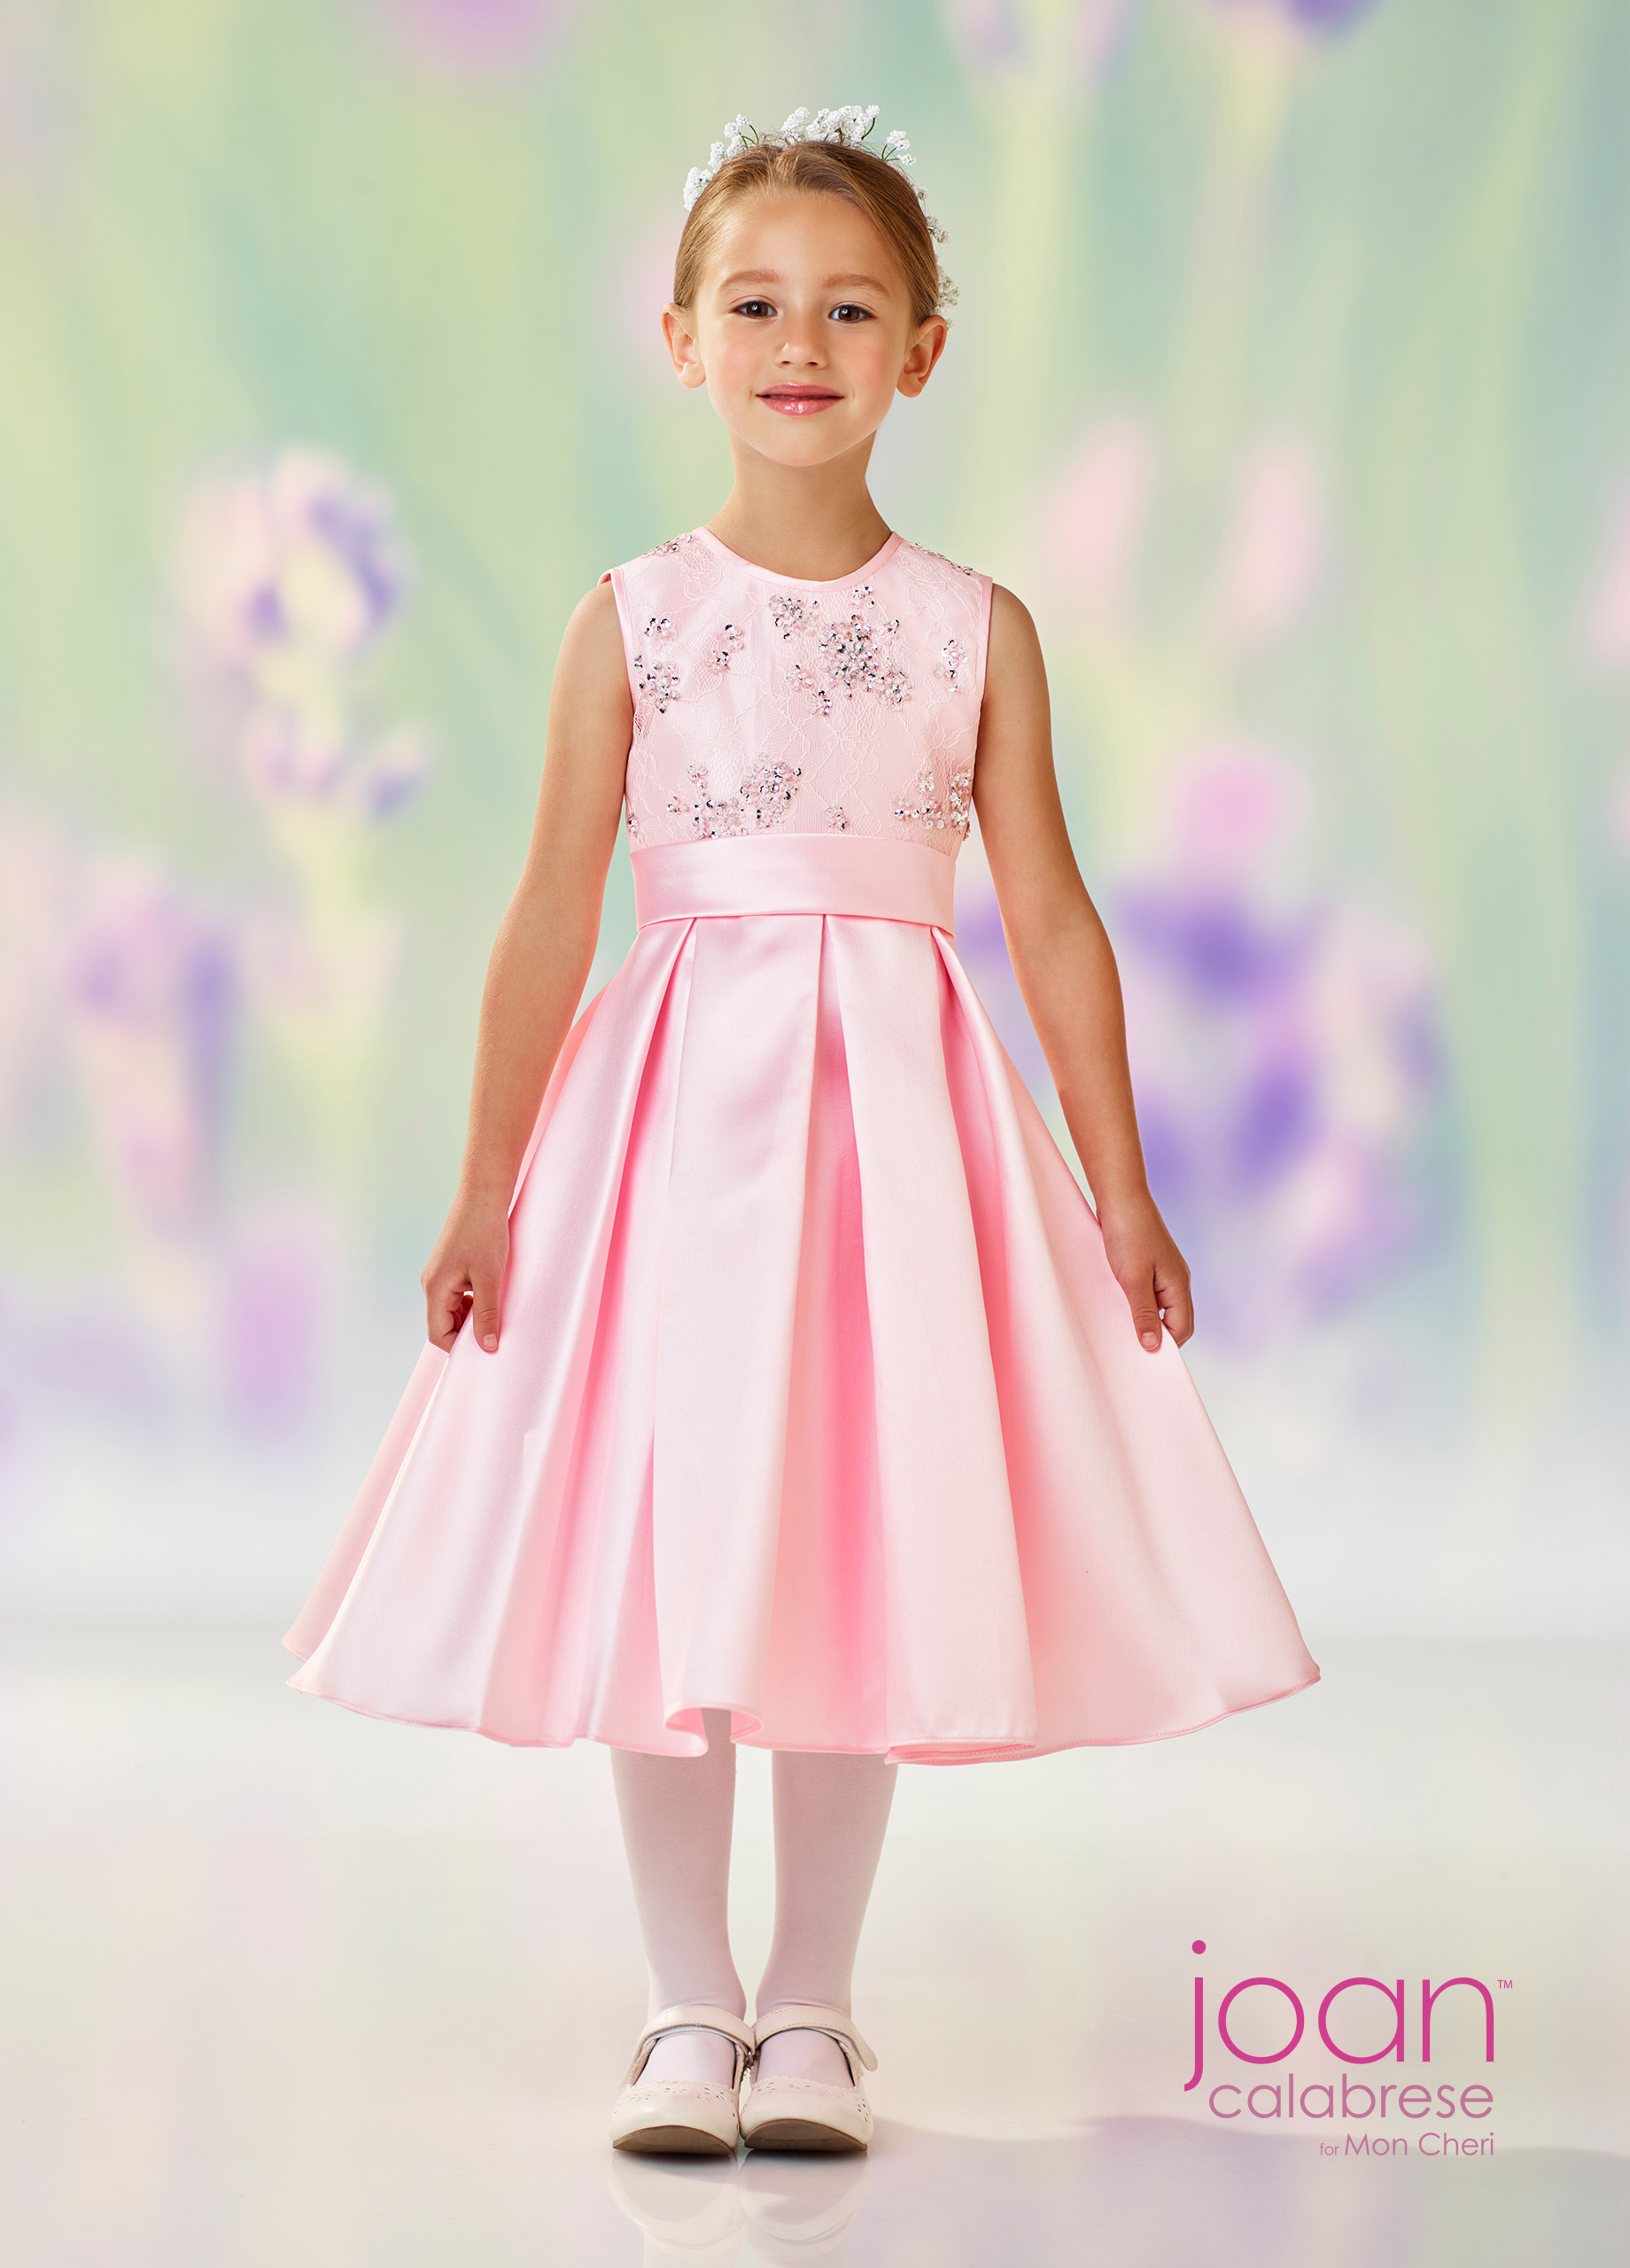 bac45ffed08 pink-flower-girl-dress-Joan-Calabrese-Mon-Cheri-118313 A - Dianes